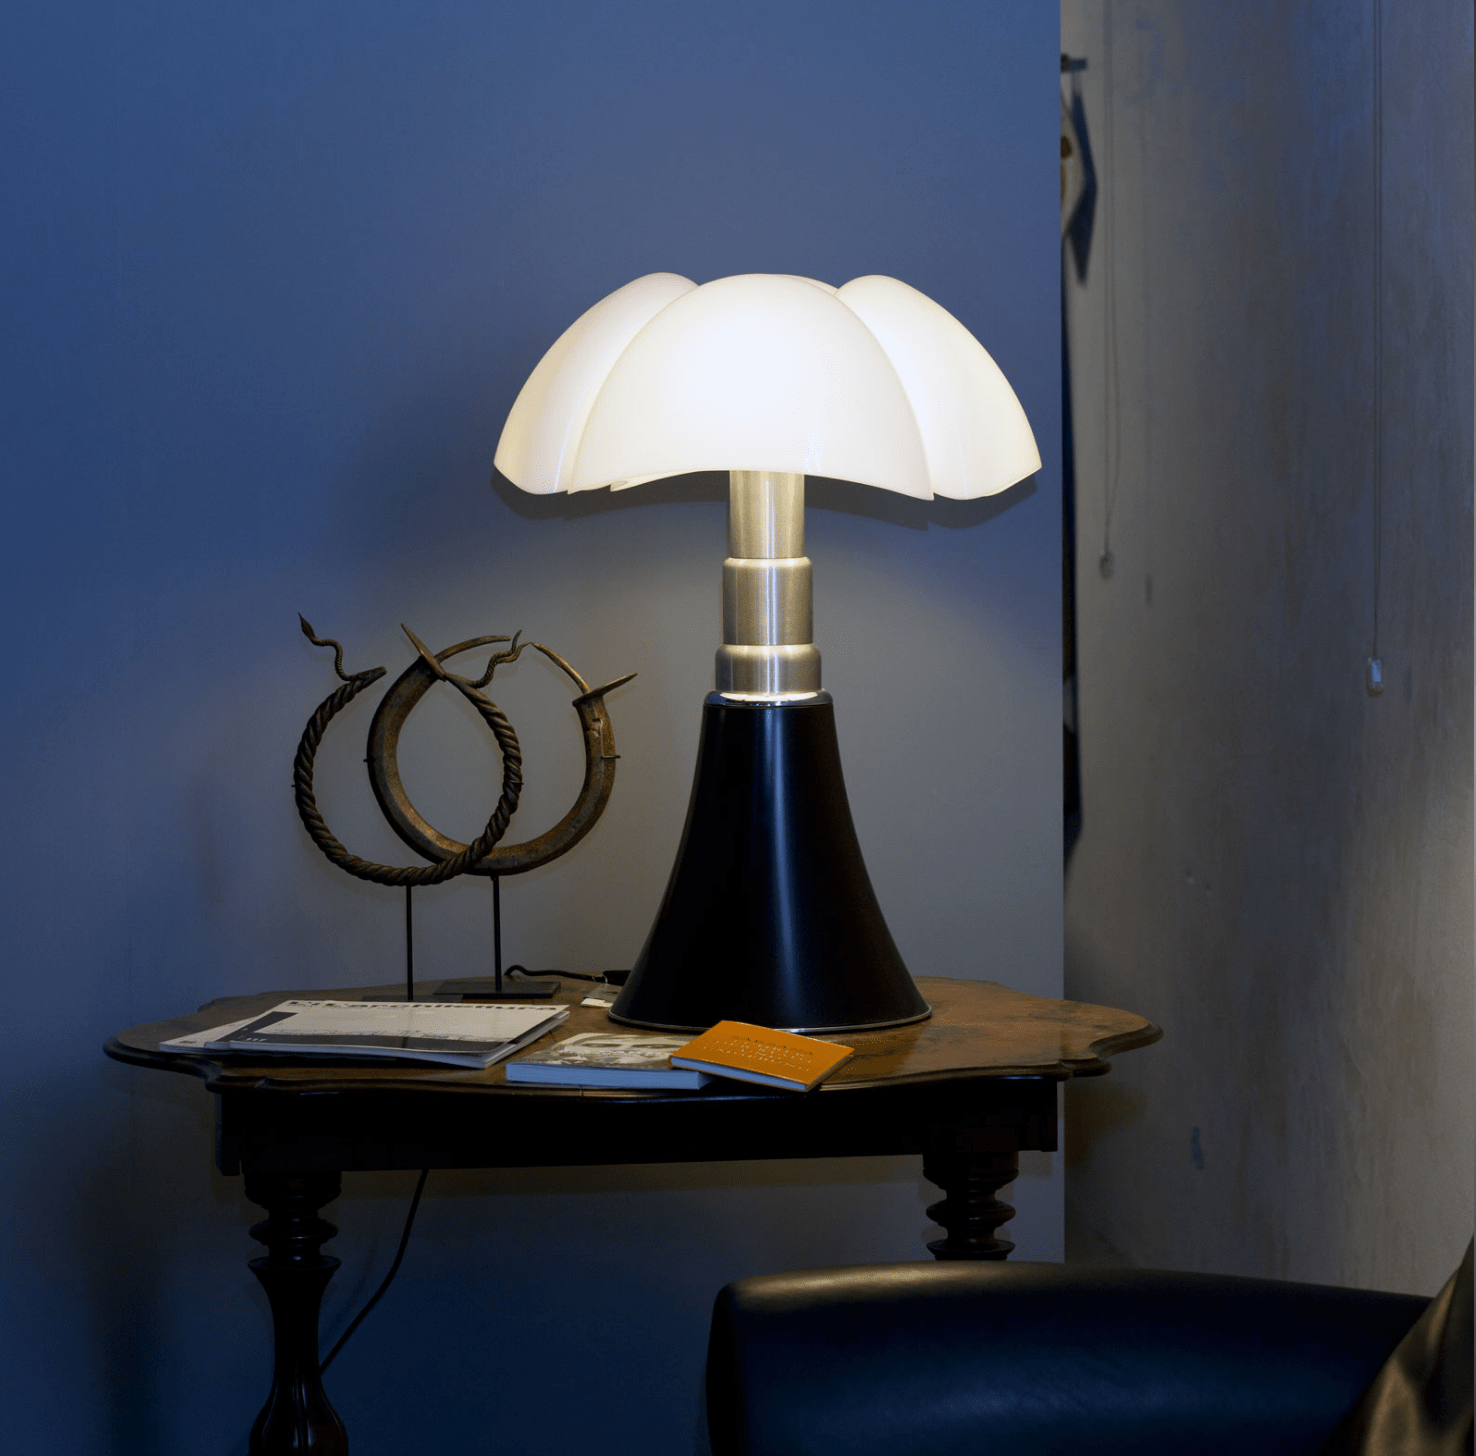 Interieur Design Verlichting Pipistrello Lamp Van Martinelli Luce Collection Loncin Loncin